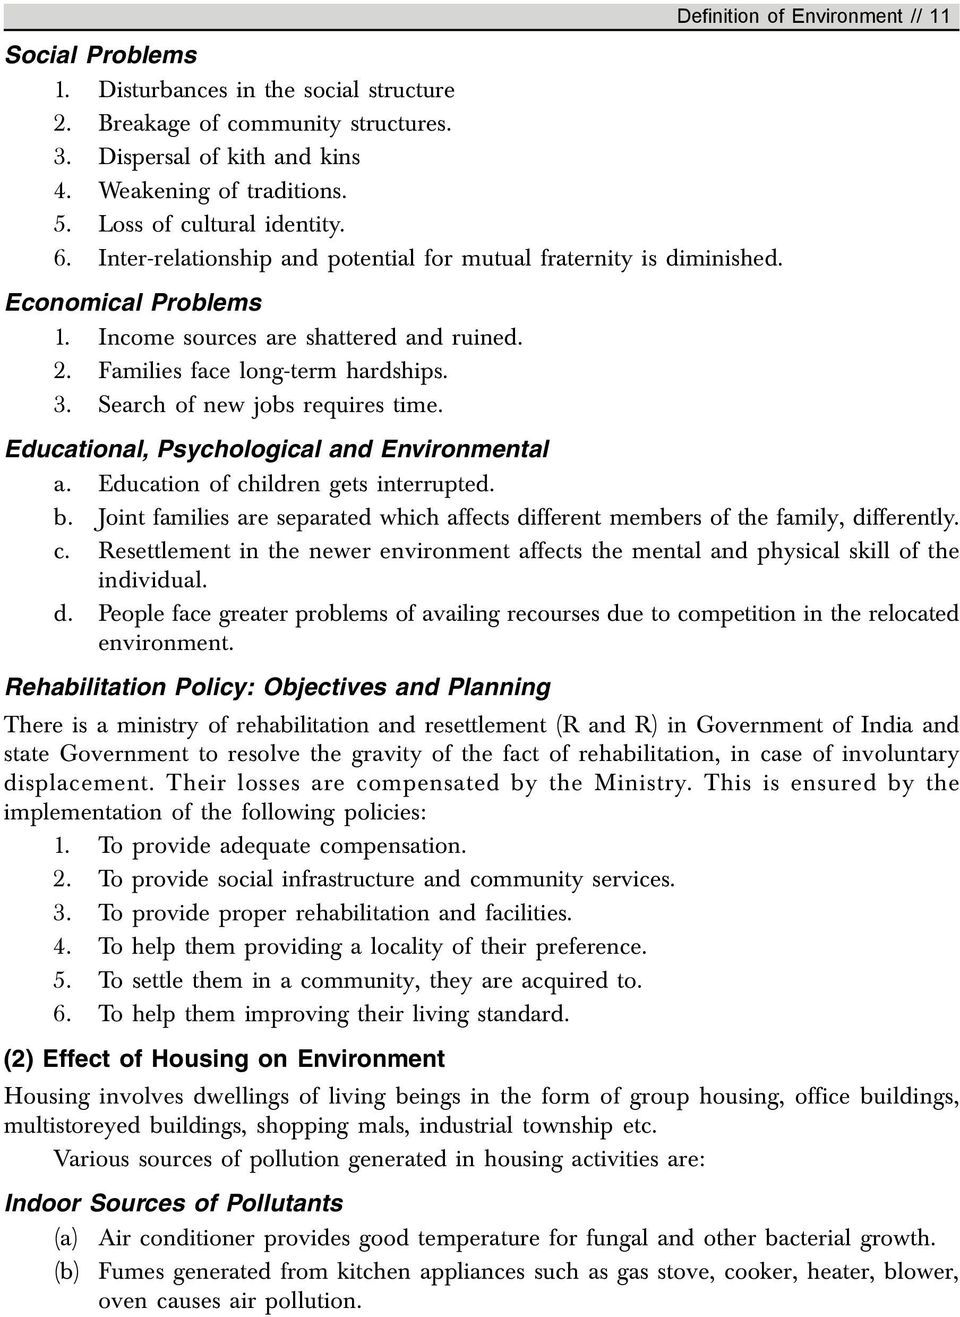 definition of environment - pdf